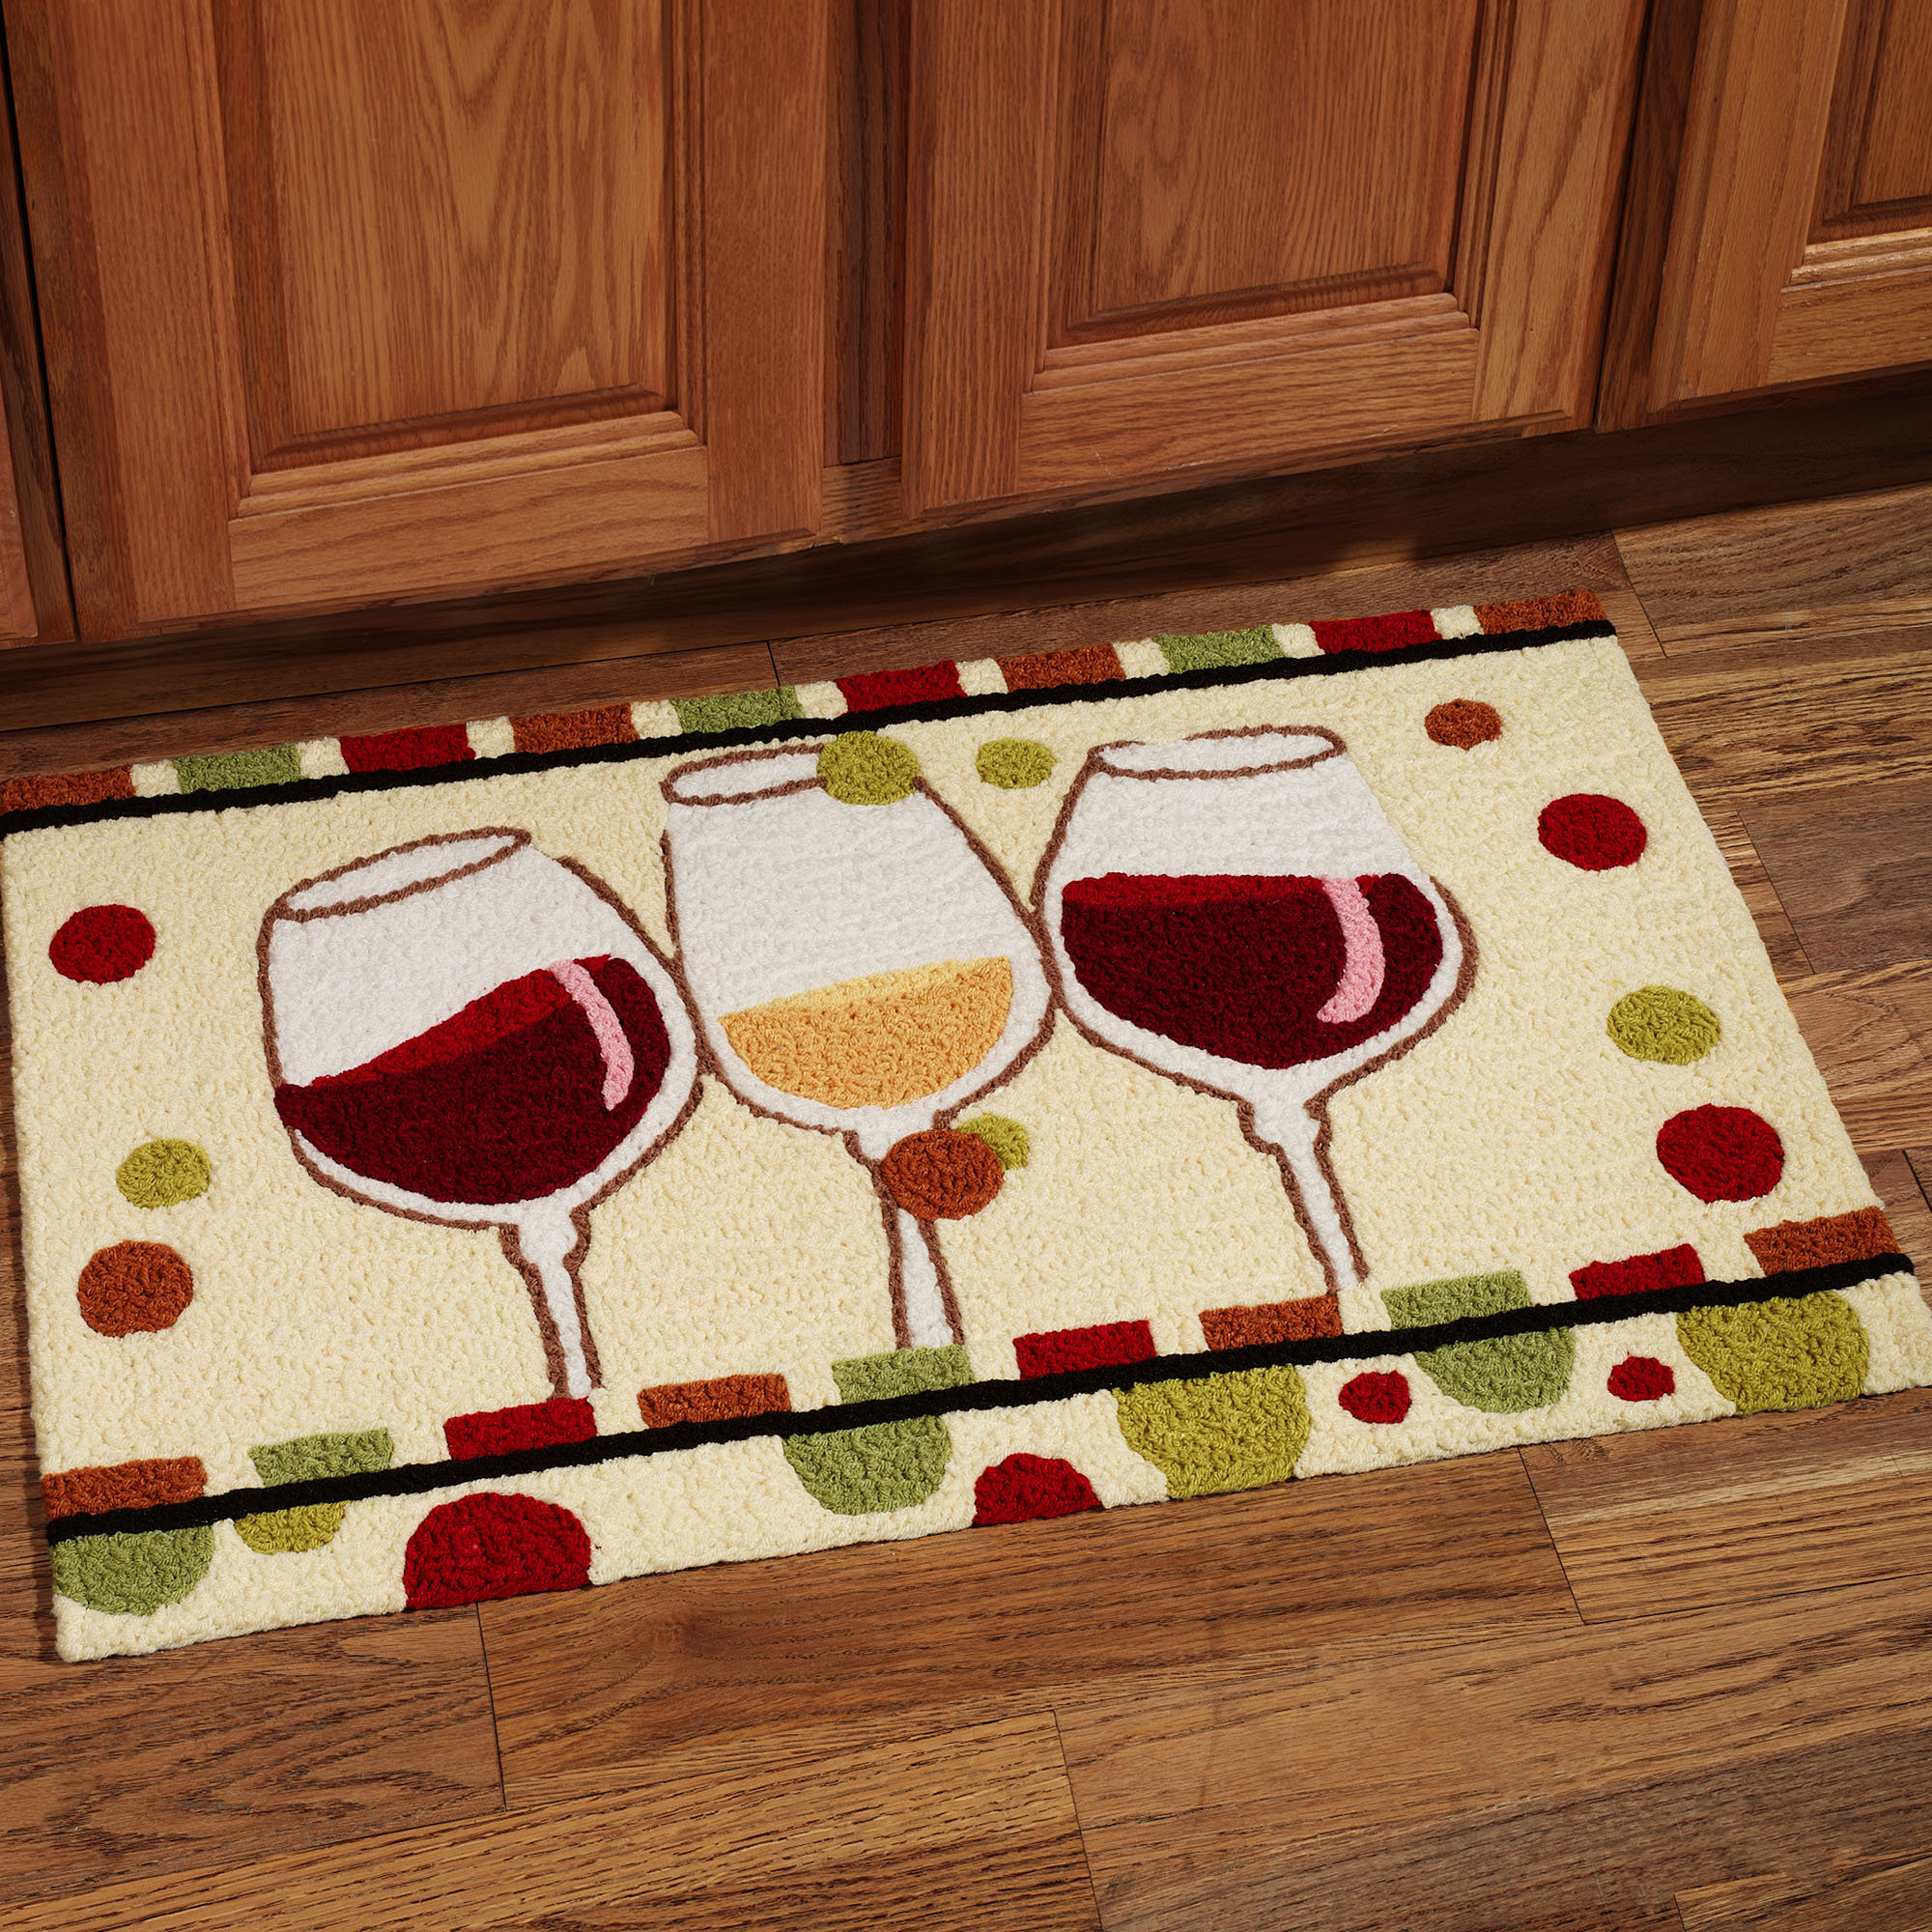 Kitchen Table On Rug: Best Kitchen Rugs And Mats Selections